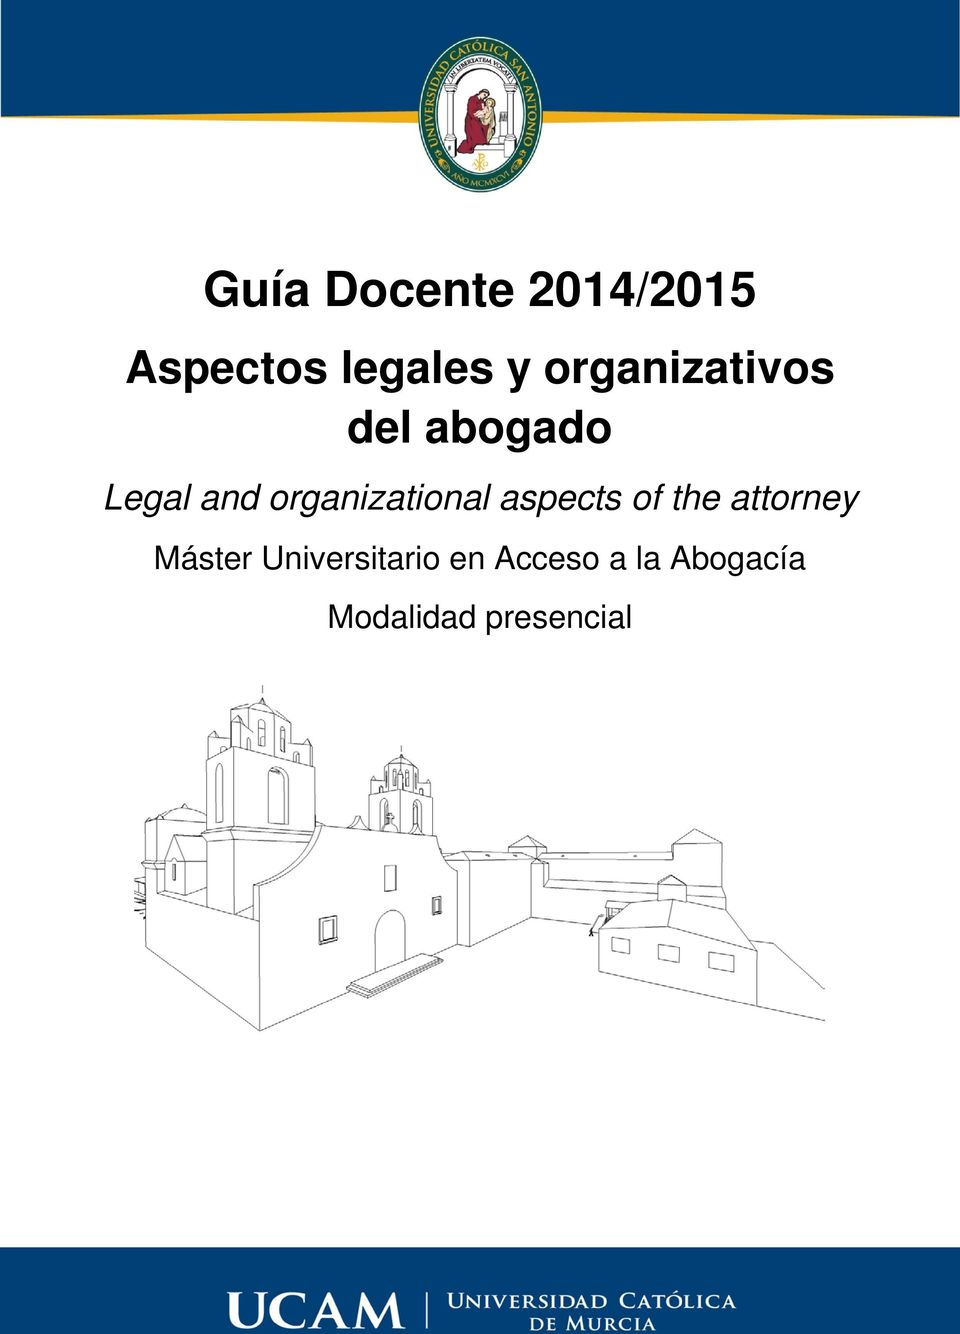 organizational aspects of the attorney Máster